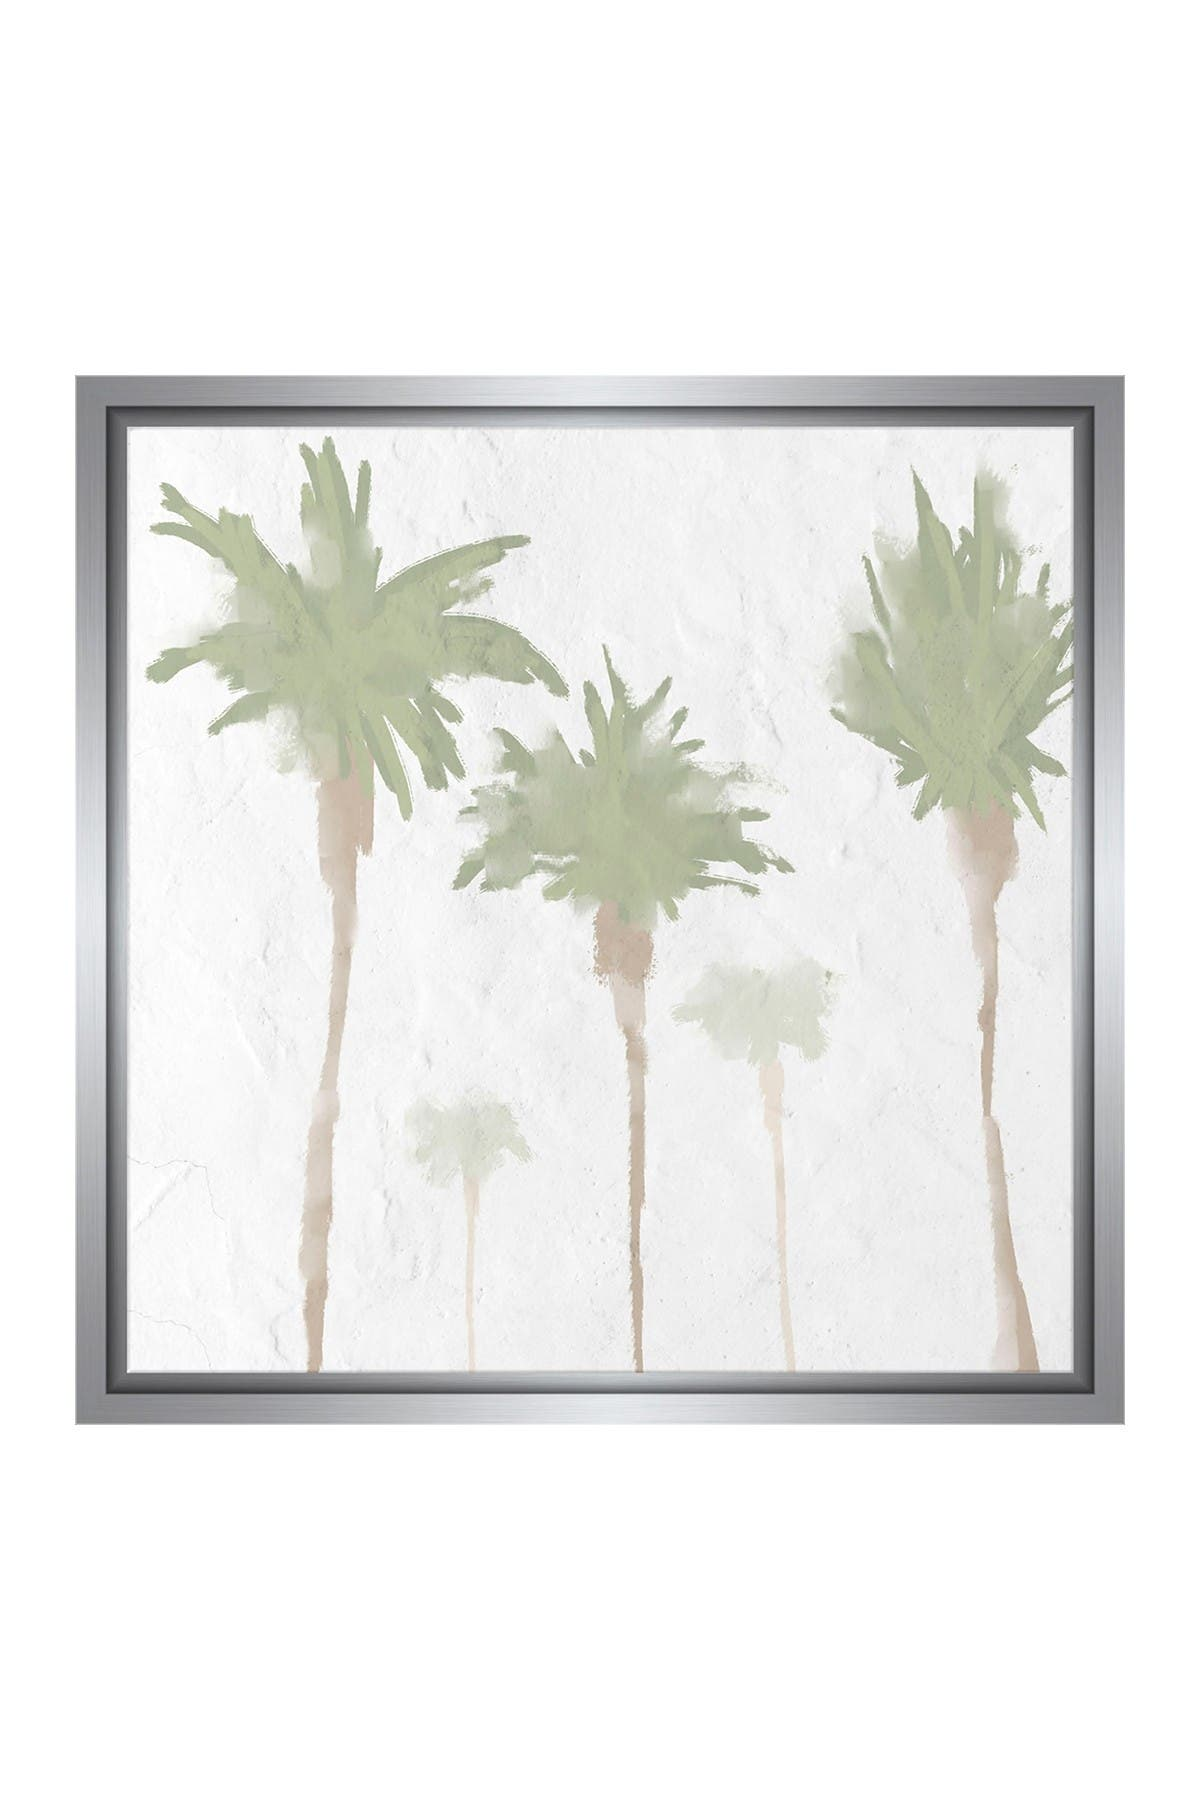 Image of PTM Images Small Botanical #49 Square Canvas